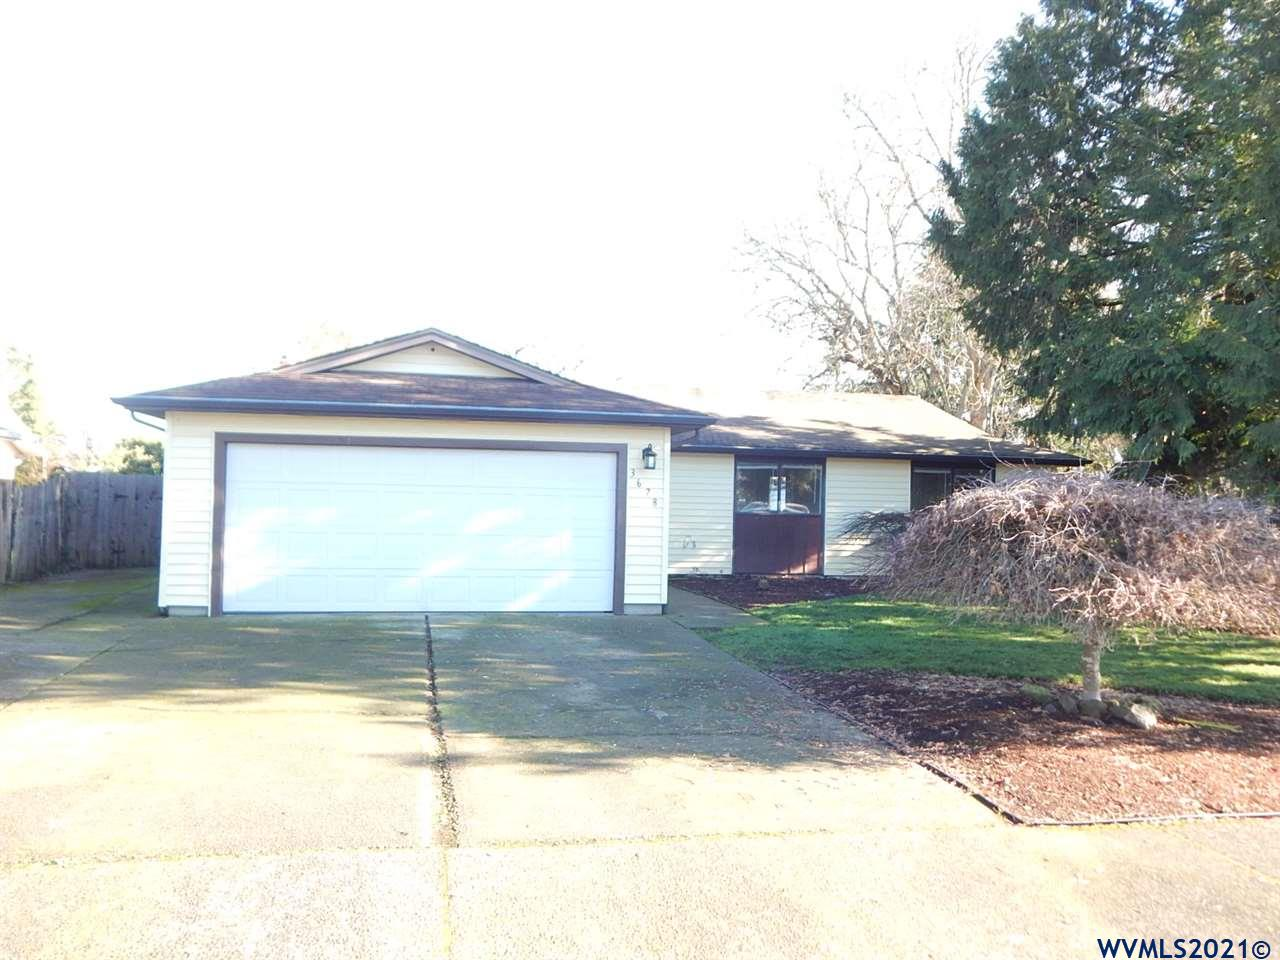 Accepted Offer with Contingencies. Nicely updated single level home in quiet subdivision.  3 large bedrooms plus an office.   100' deep lot with good sized RV parking area.  Updates include new LVP flooring, carpet, interior paint & granite counters.  Stainless steel appliances in kitchen.  Central AC.  Covered patio in the fully fenced backyard.  House is move in ready.  Near the edge of town with no through traffic.